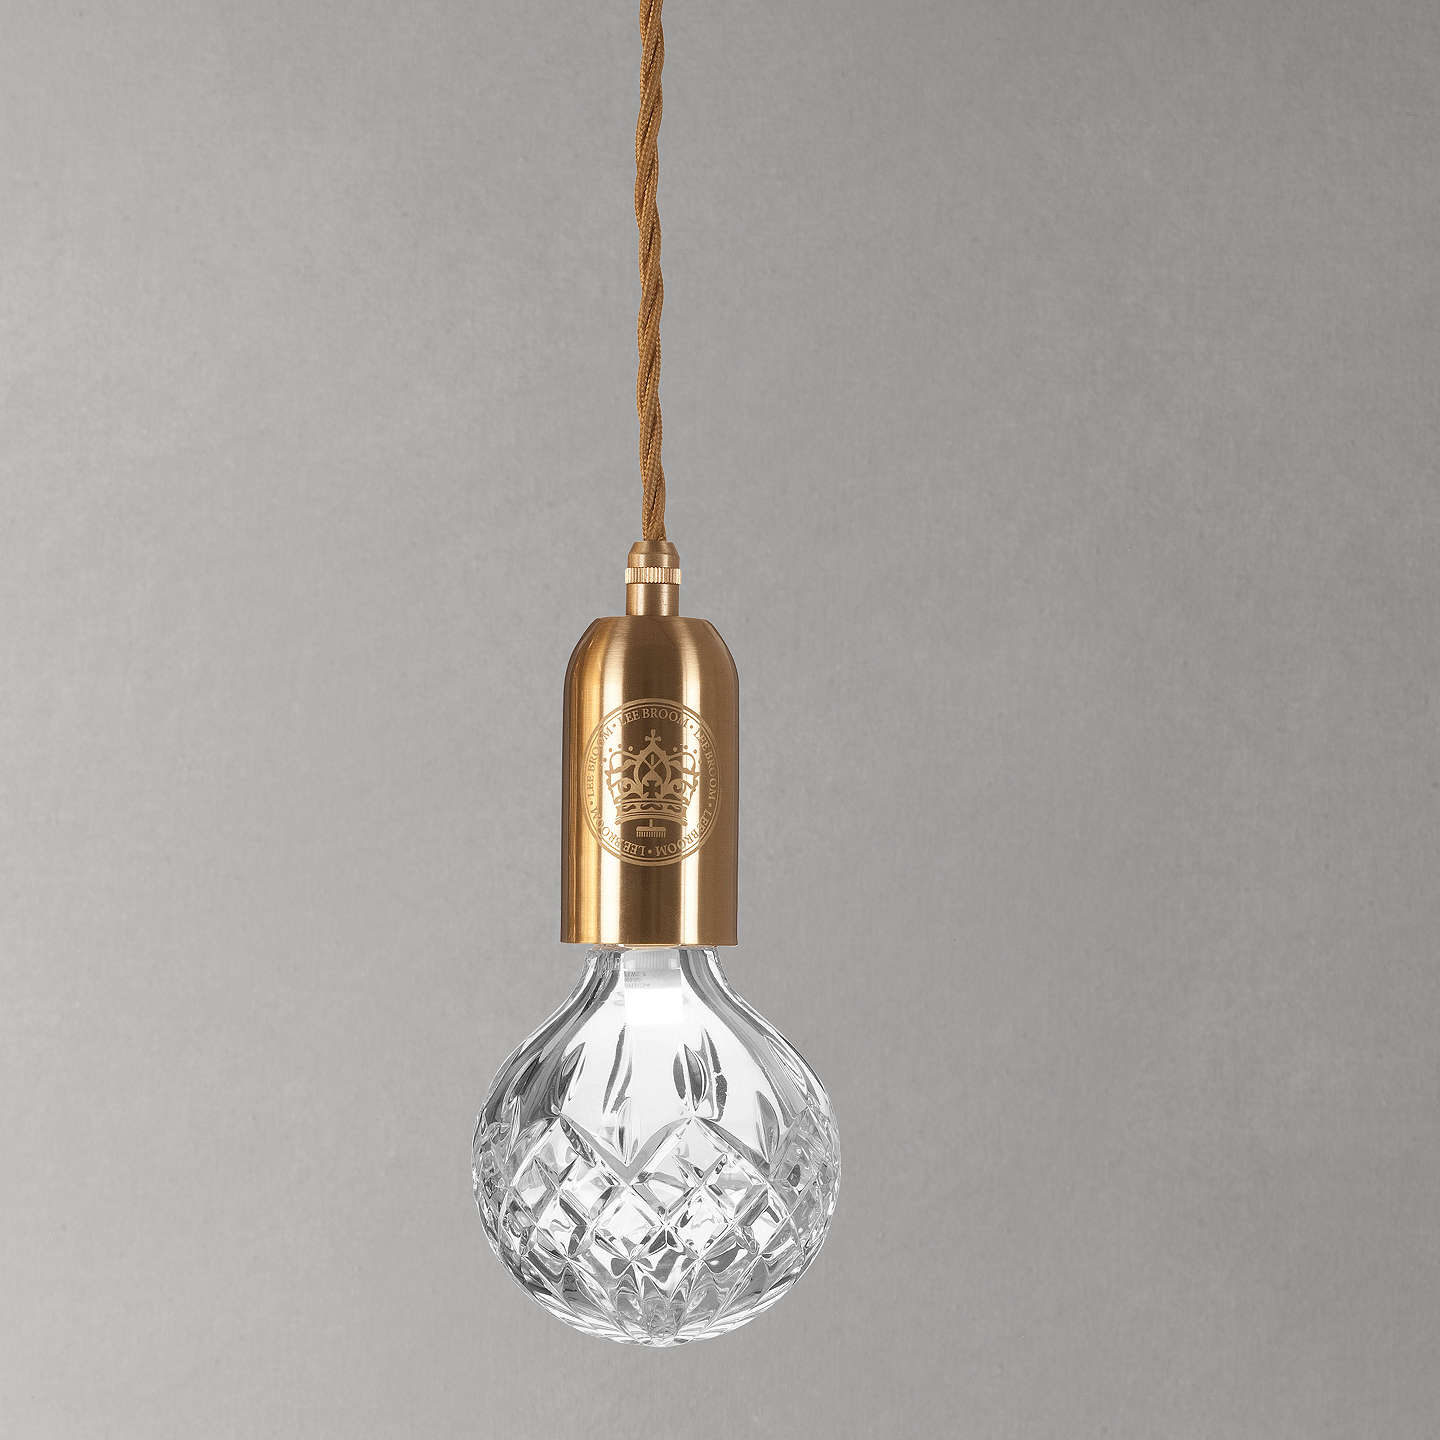 industrial light vintage product lamp cord with one hardware pendant exposed fixture brass fabric canopy antique led wrapped modern bulb included